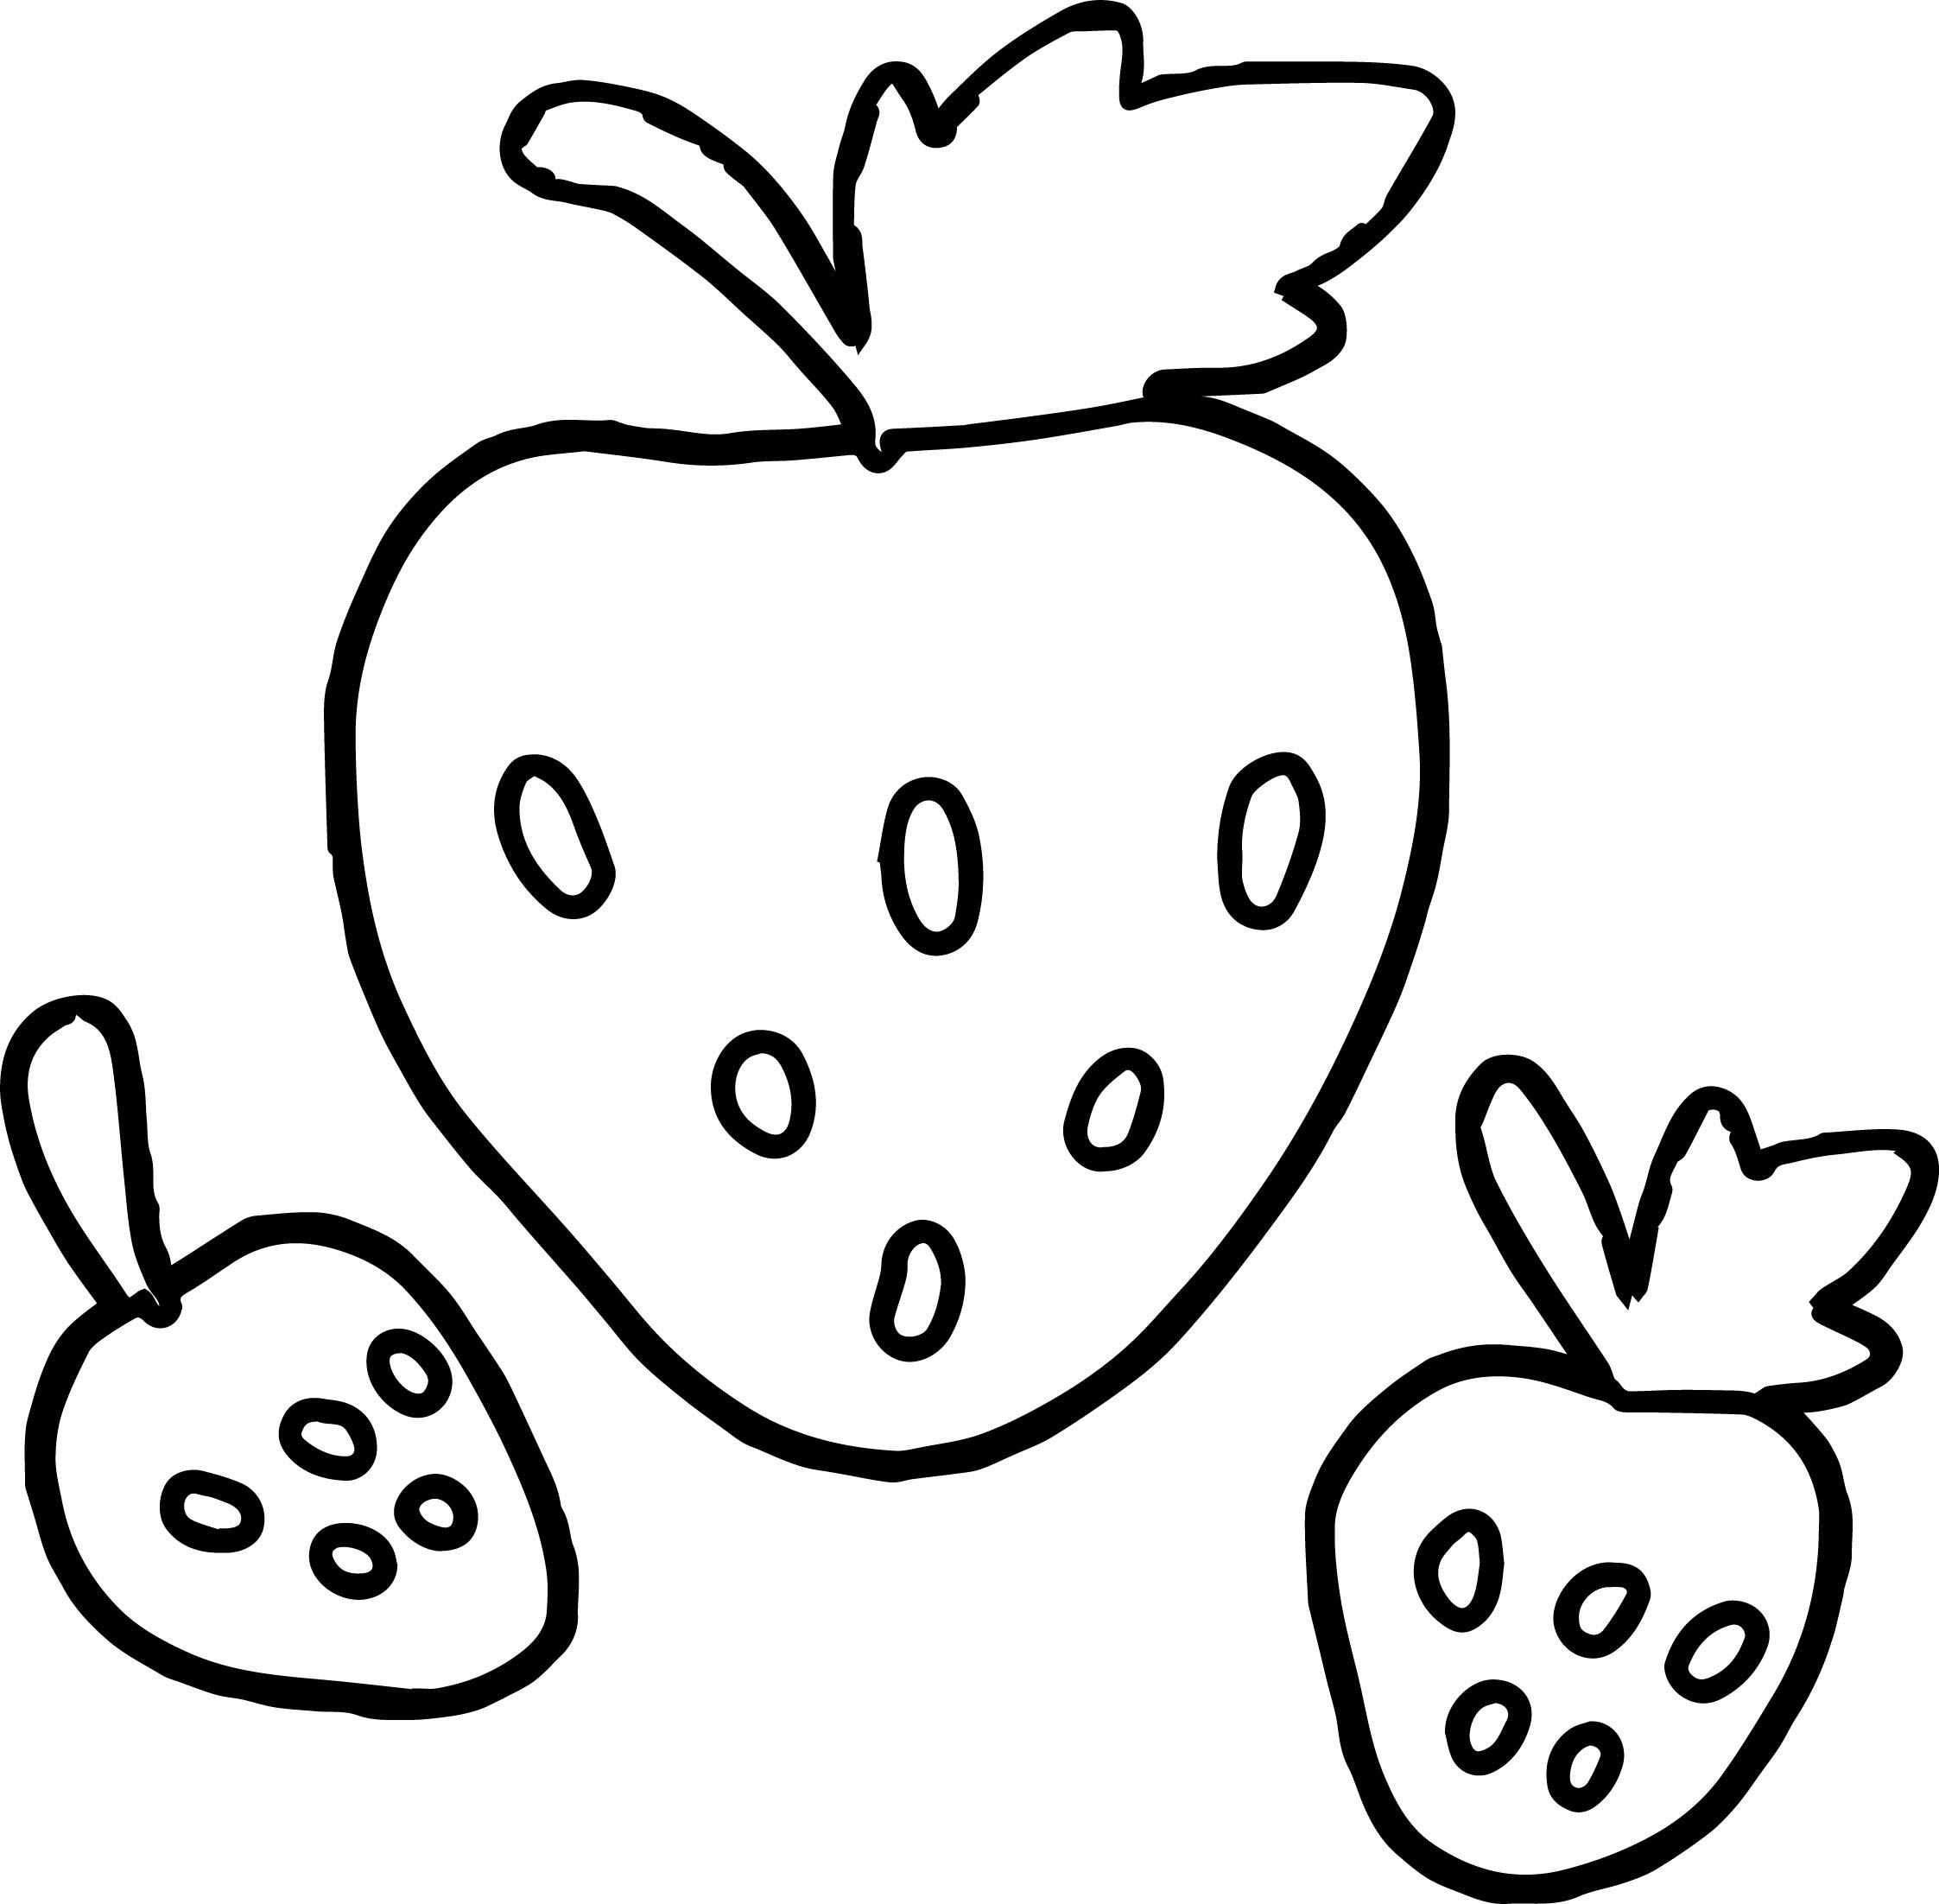 strawberry coloring page strawberry plant coloring page free printable coloring strawberry coloring page